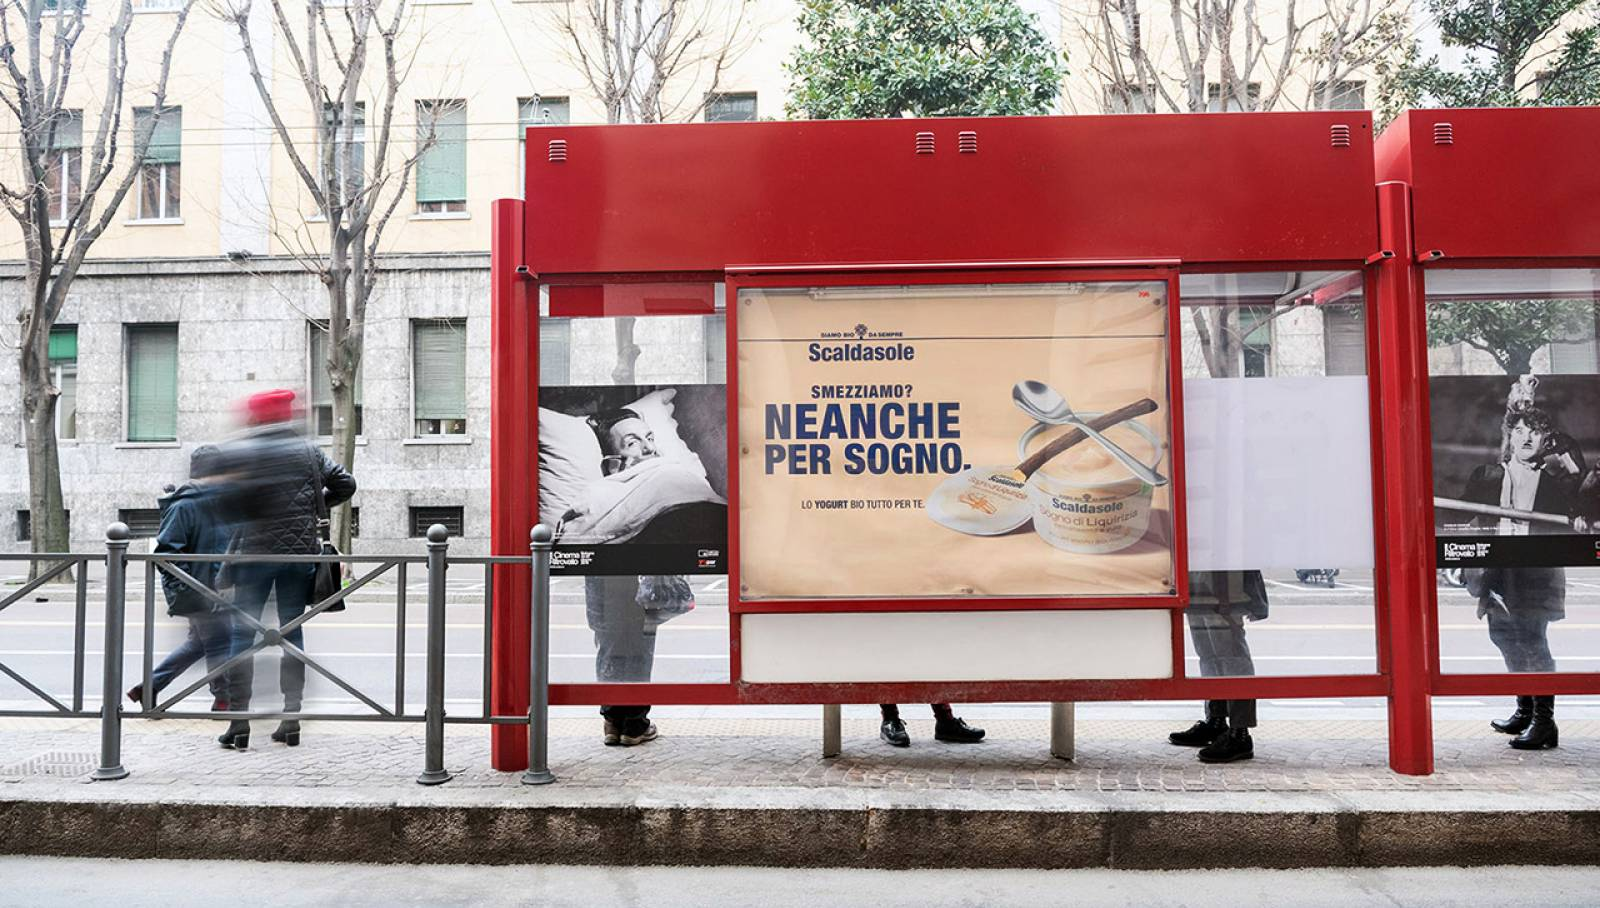 OOH advertising IGPDecaux in Bolonia Bus shelters for Scaldasole